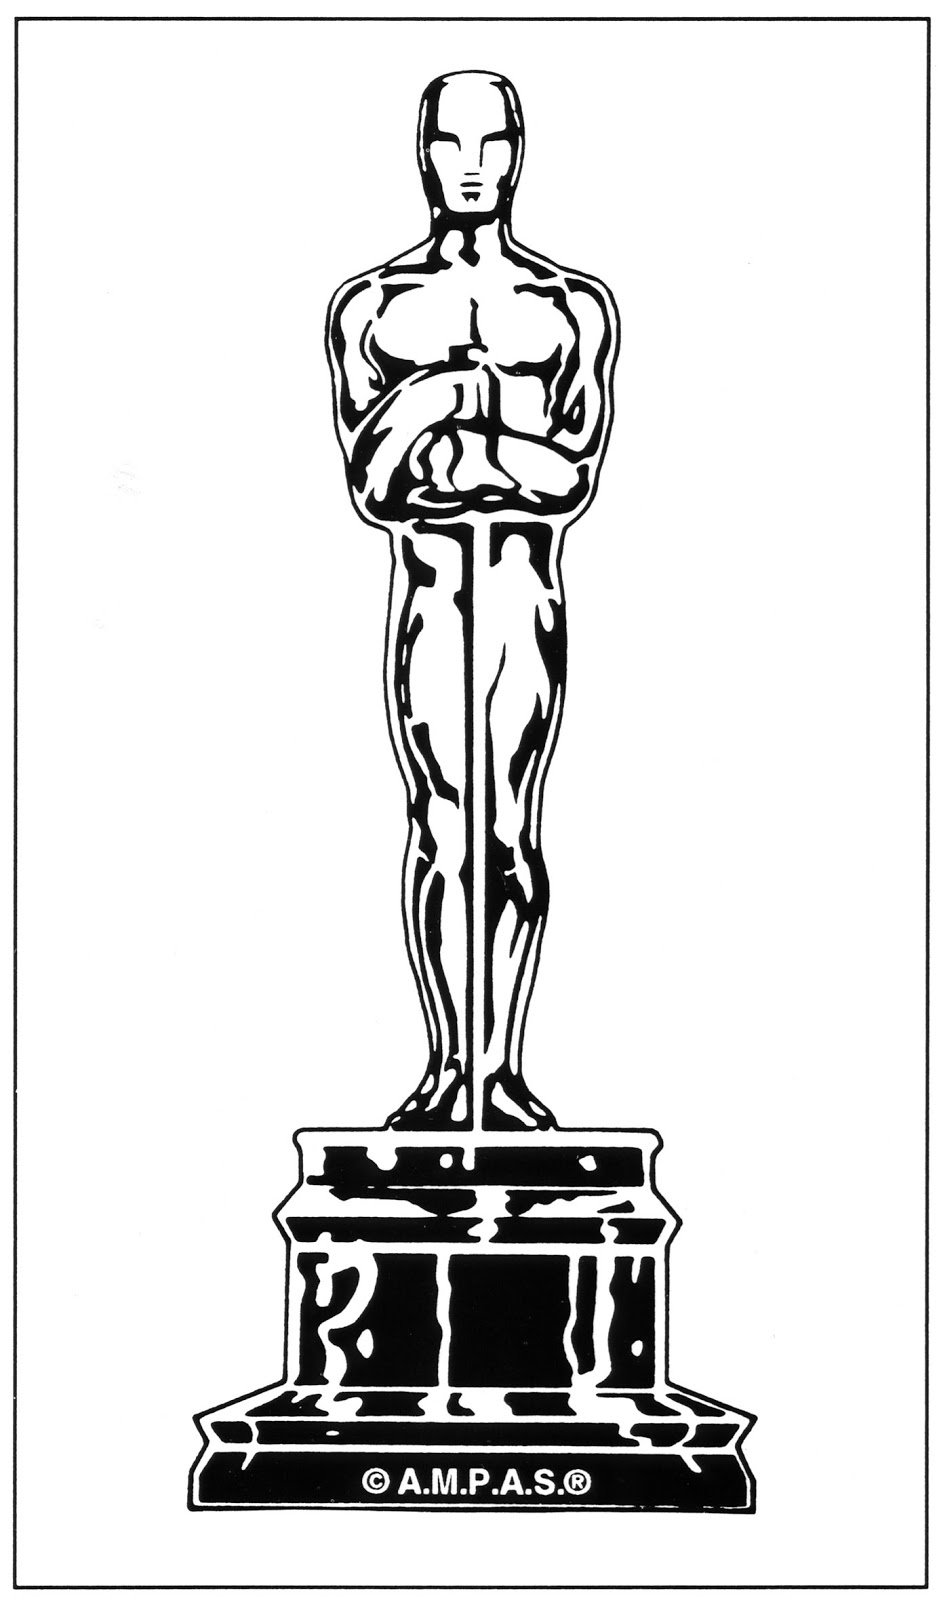 Duda Goma Eva T78576 further Trophy Coloring Sheet Sketch Templates in addition AcademyNominations also Diy Oscar Party Popcorn Box Printables besides Oscar. on oscar award cut out template